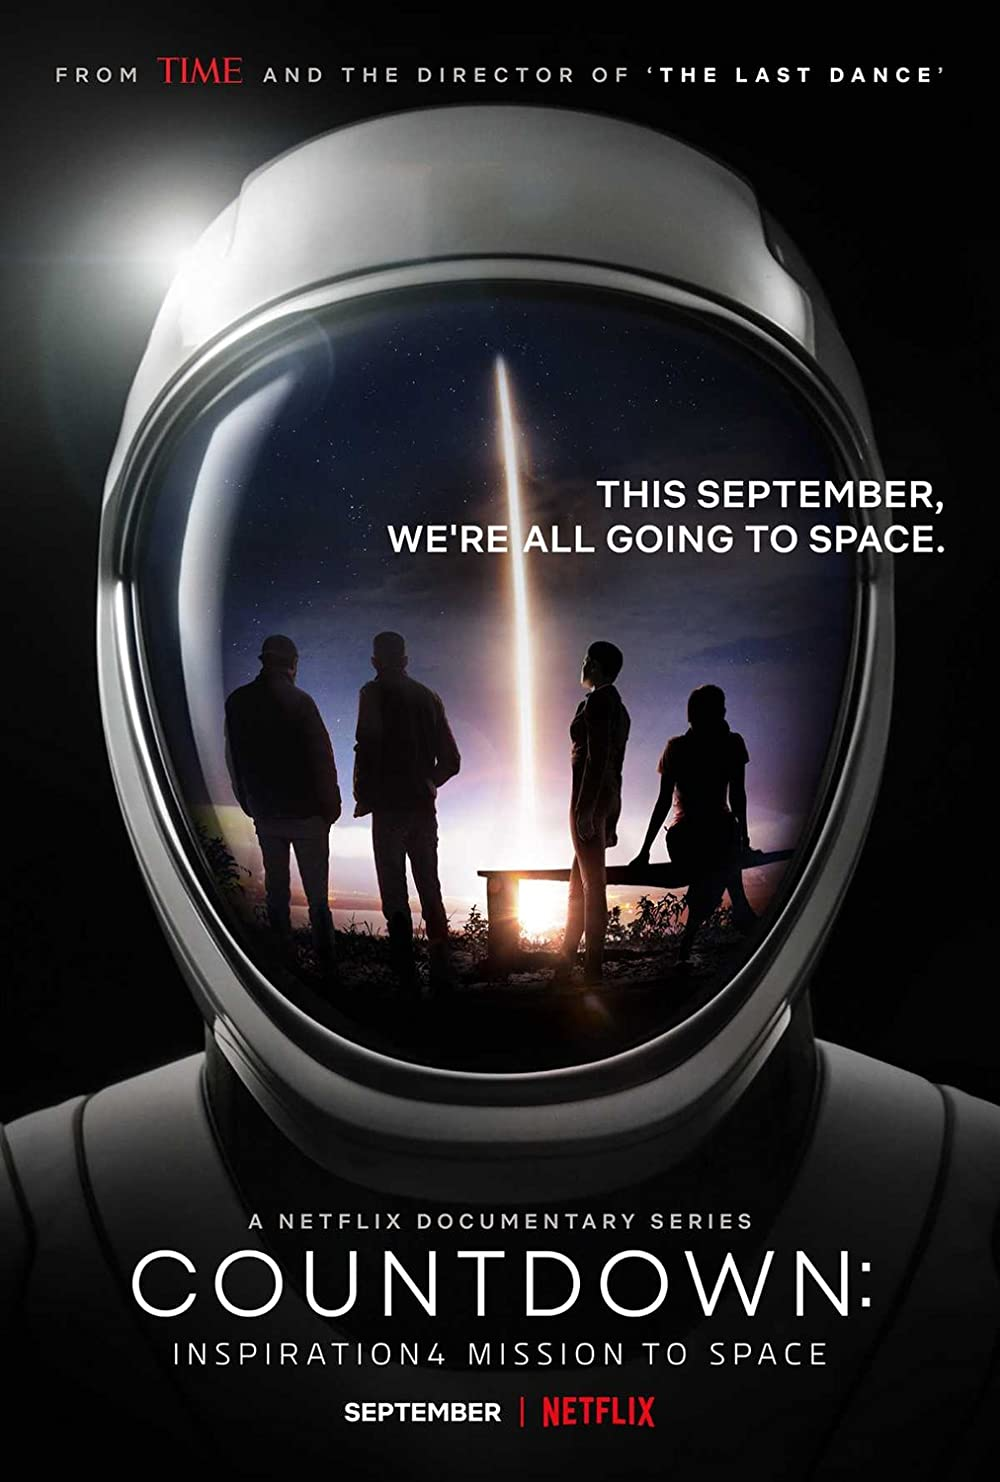 Countdown: Inspiration4 Mission to Space - Season 1  Watch Movies Online